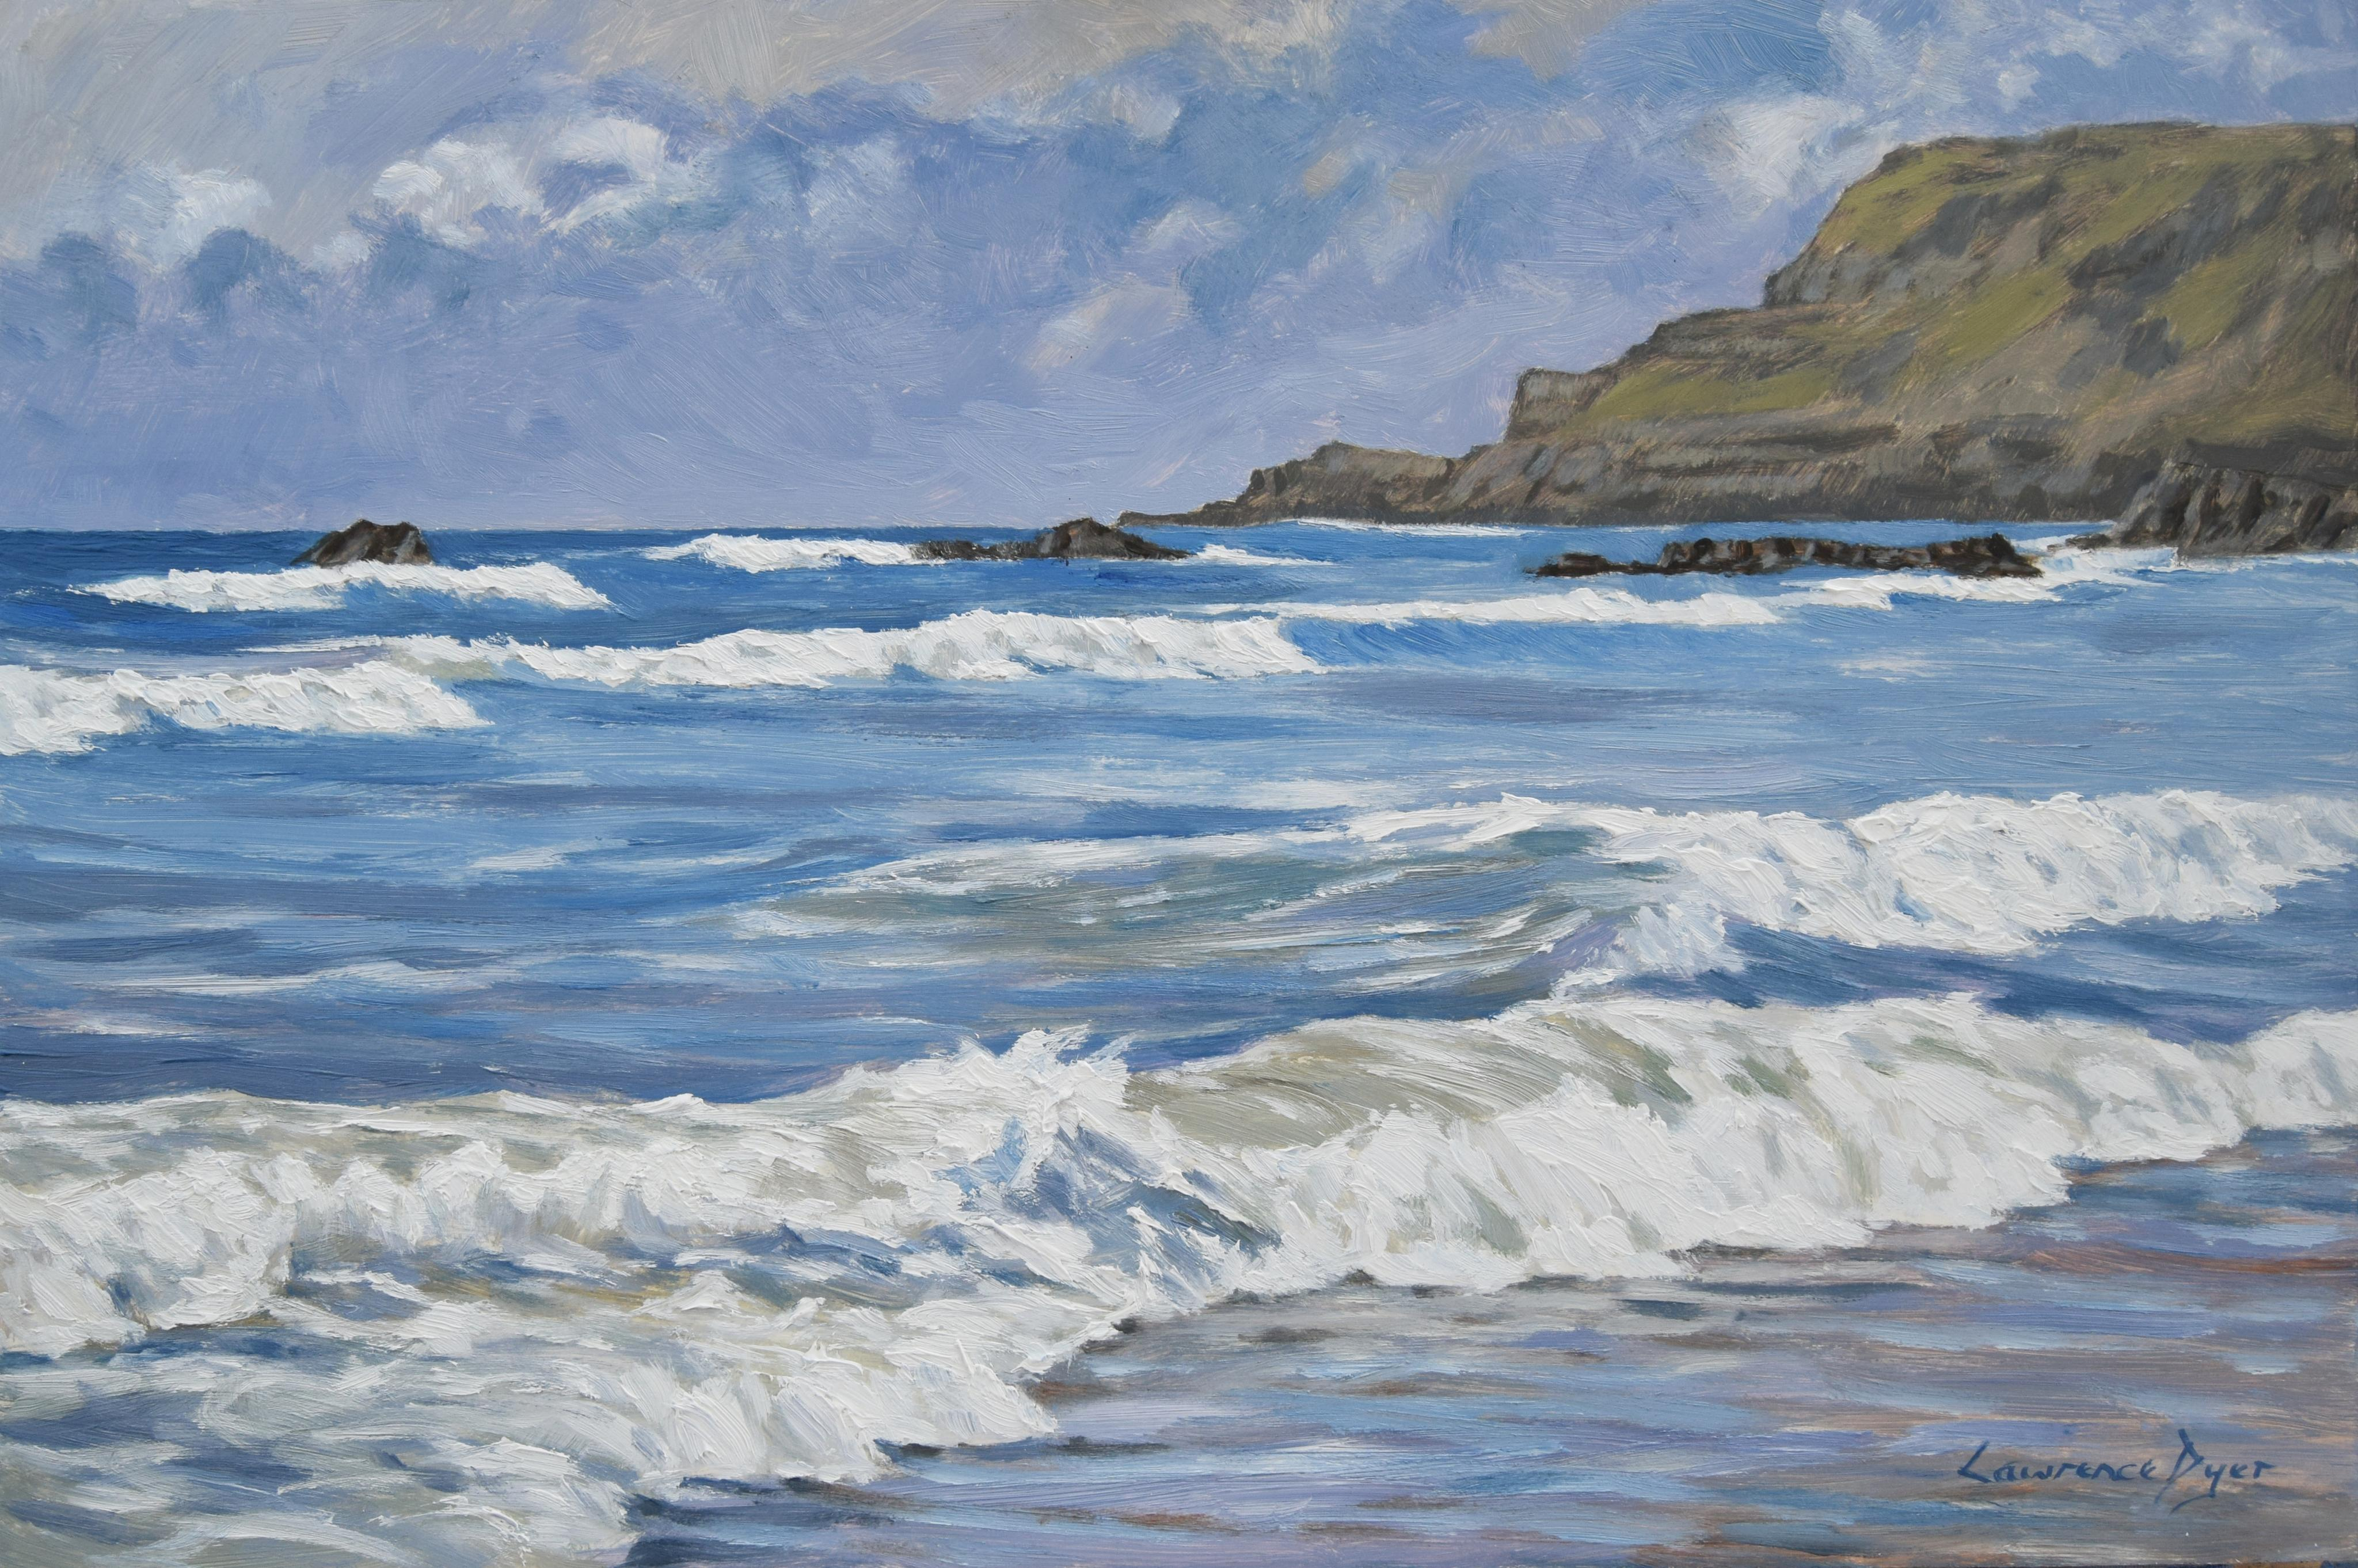 White Surf At Widemouth Bay by Lawrence Dyer